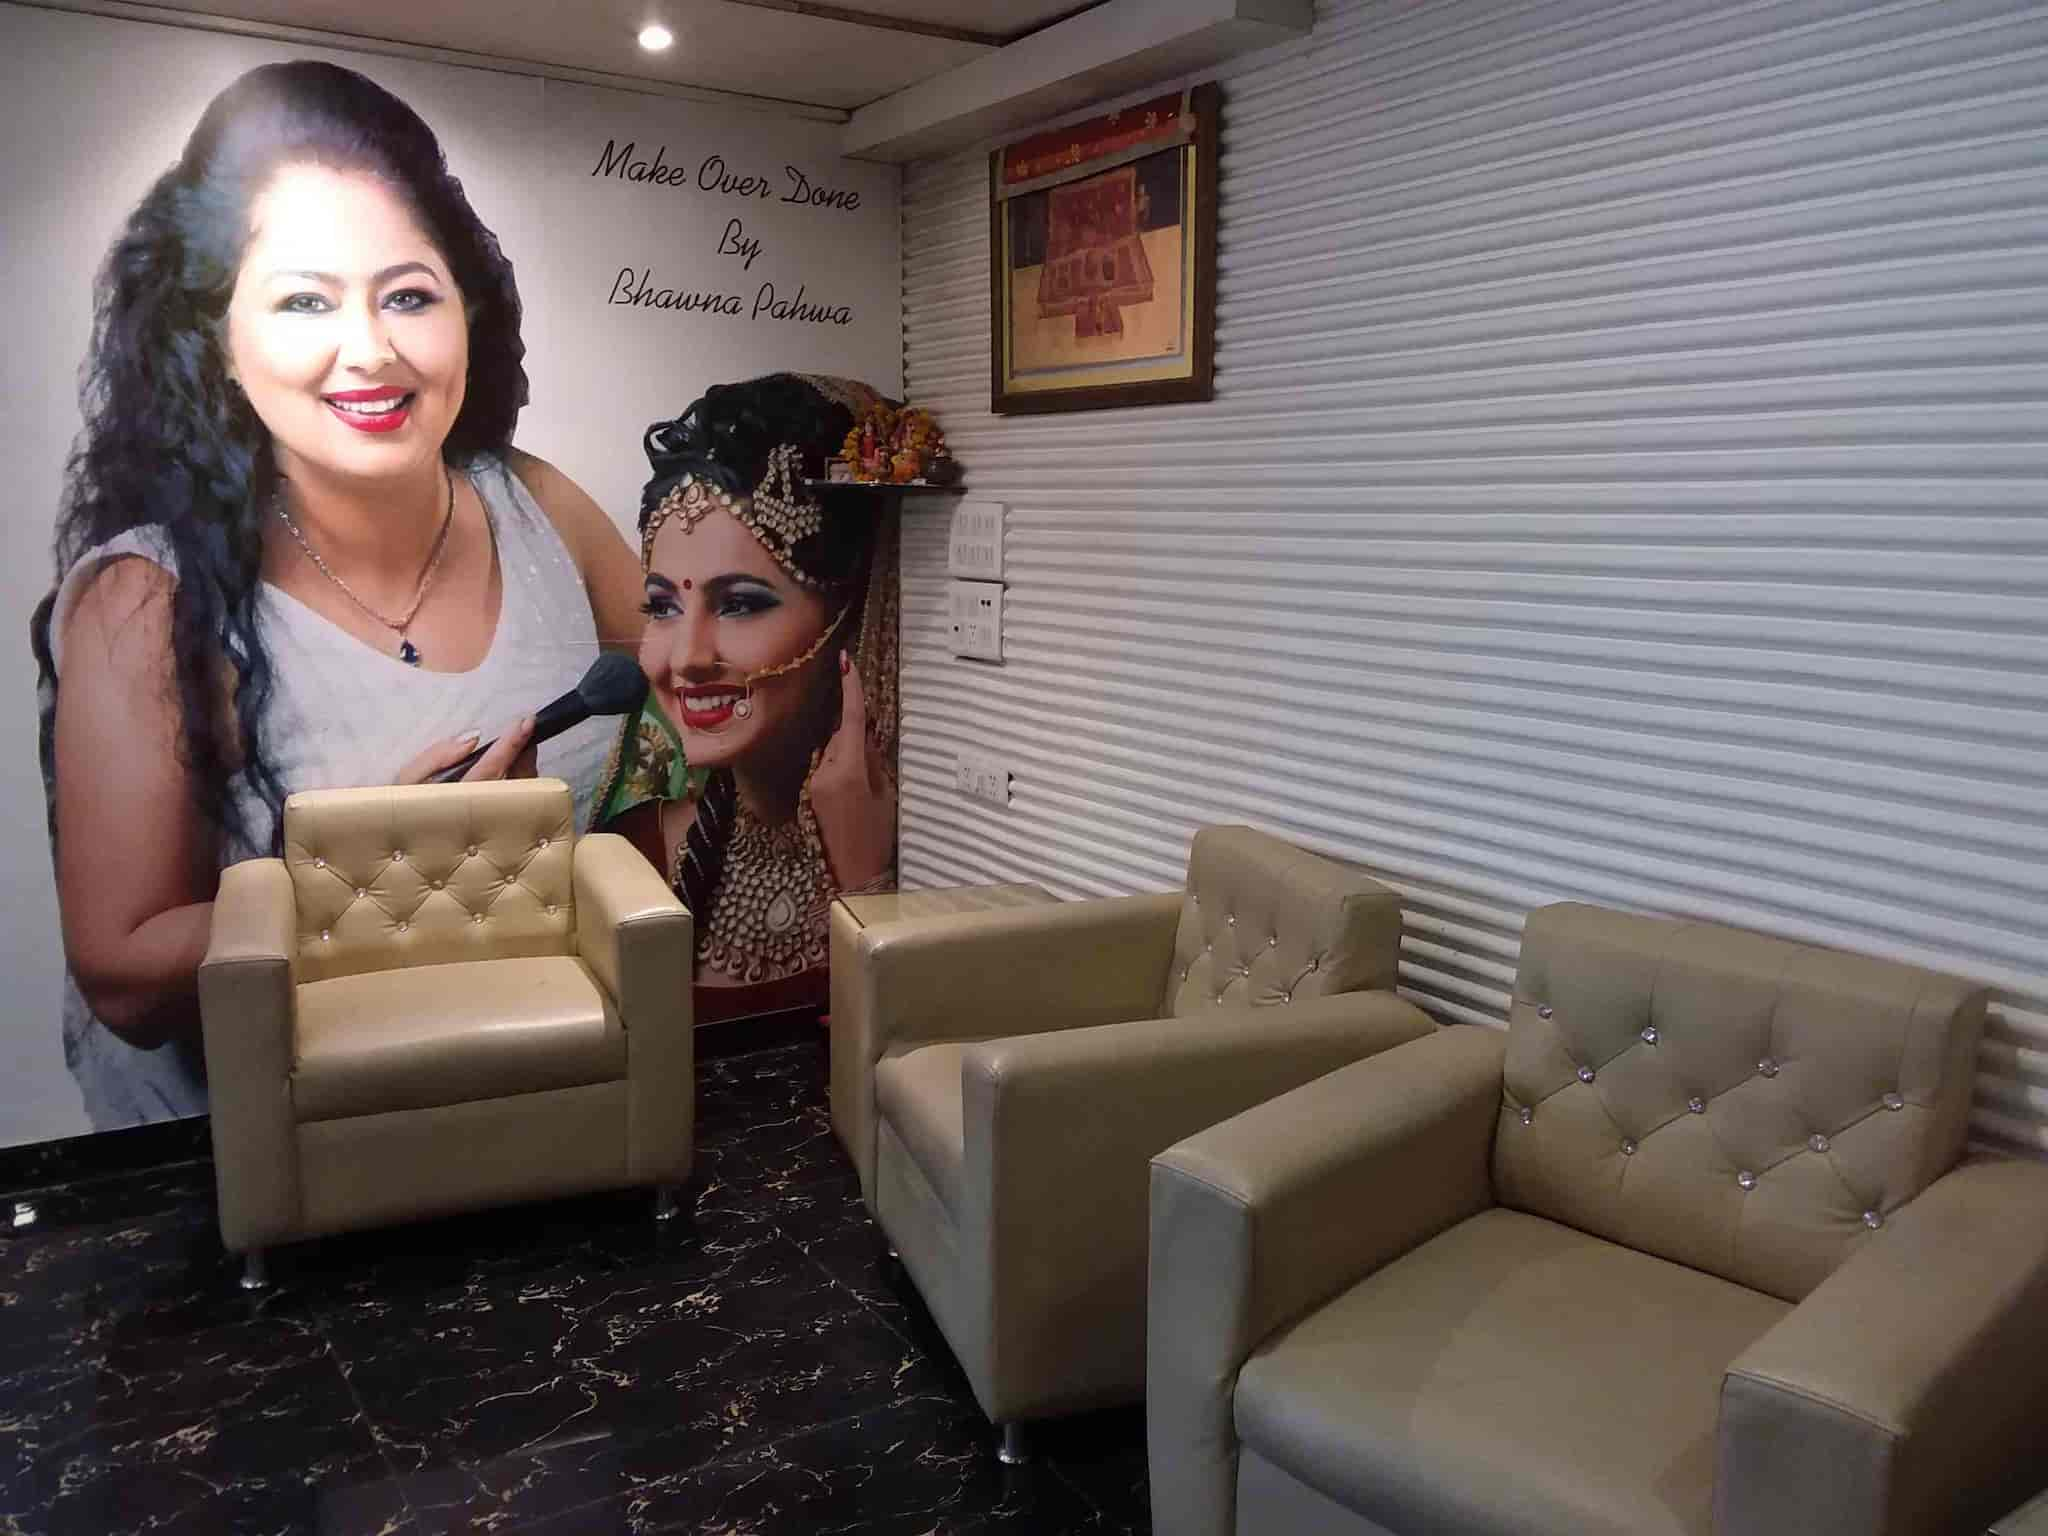 Marvelous Beauty Hair And Makeup Studio, Model Town - Makeup Artists in Delhi - Justdial